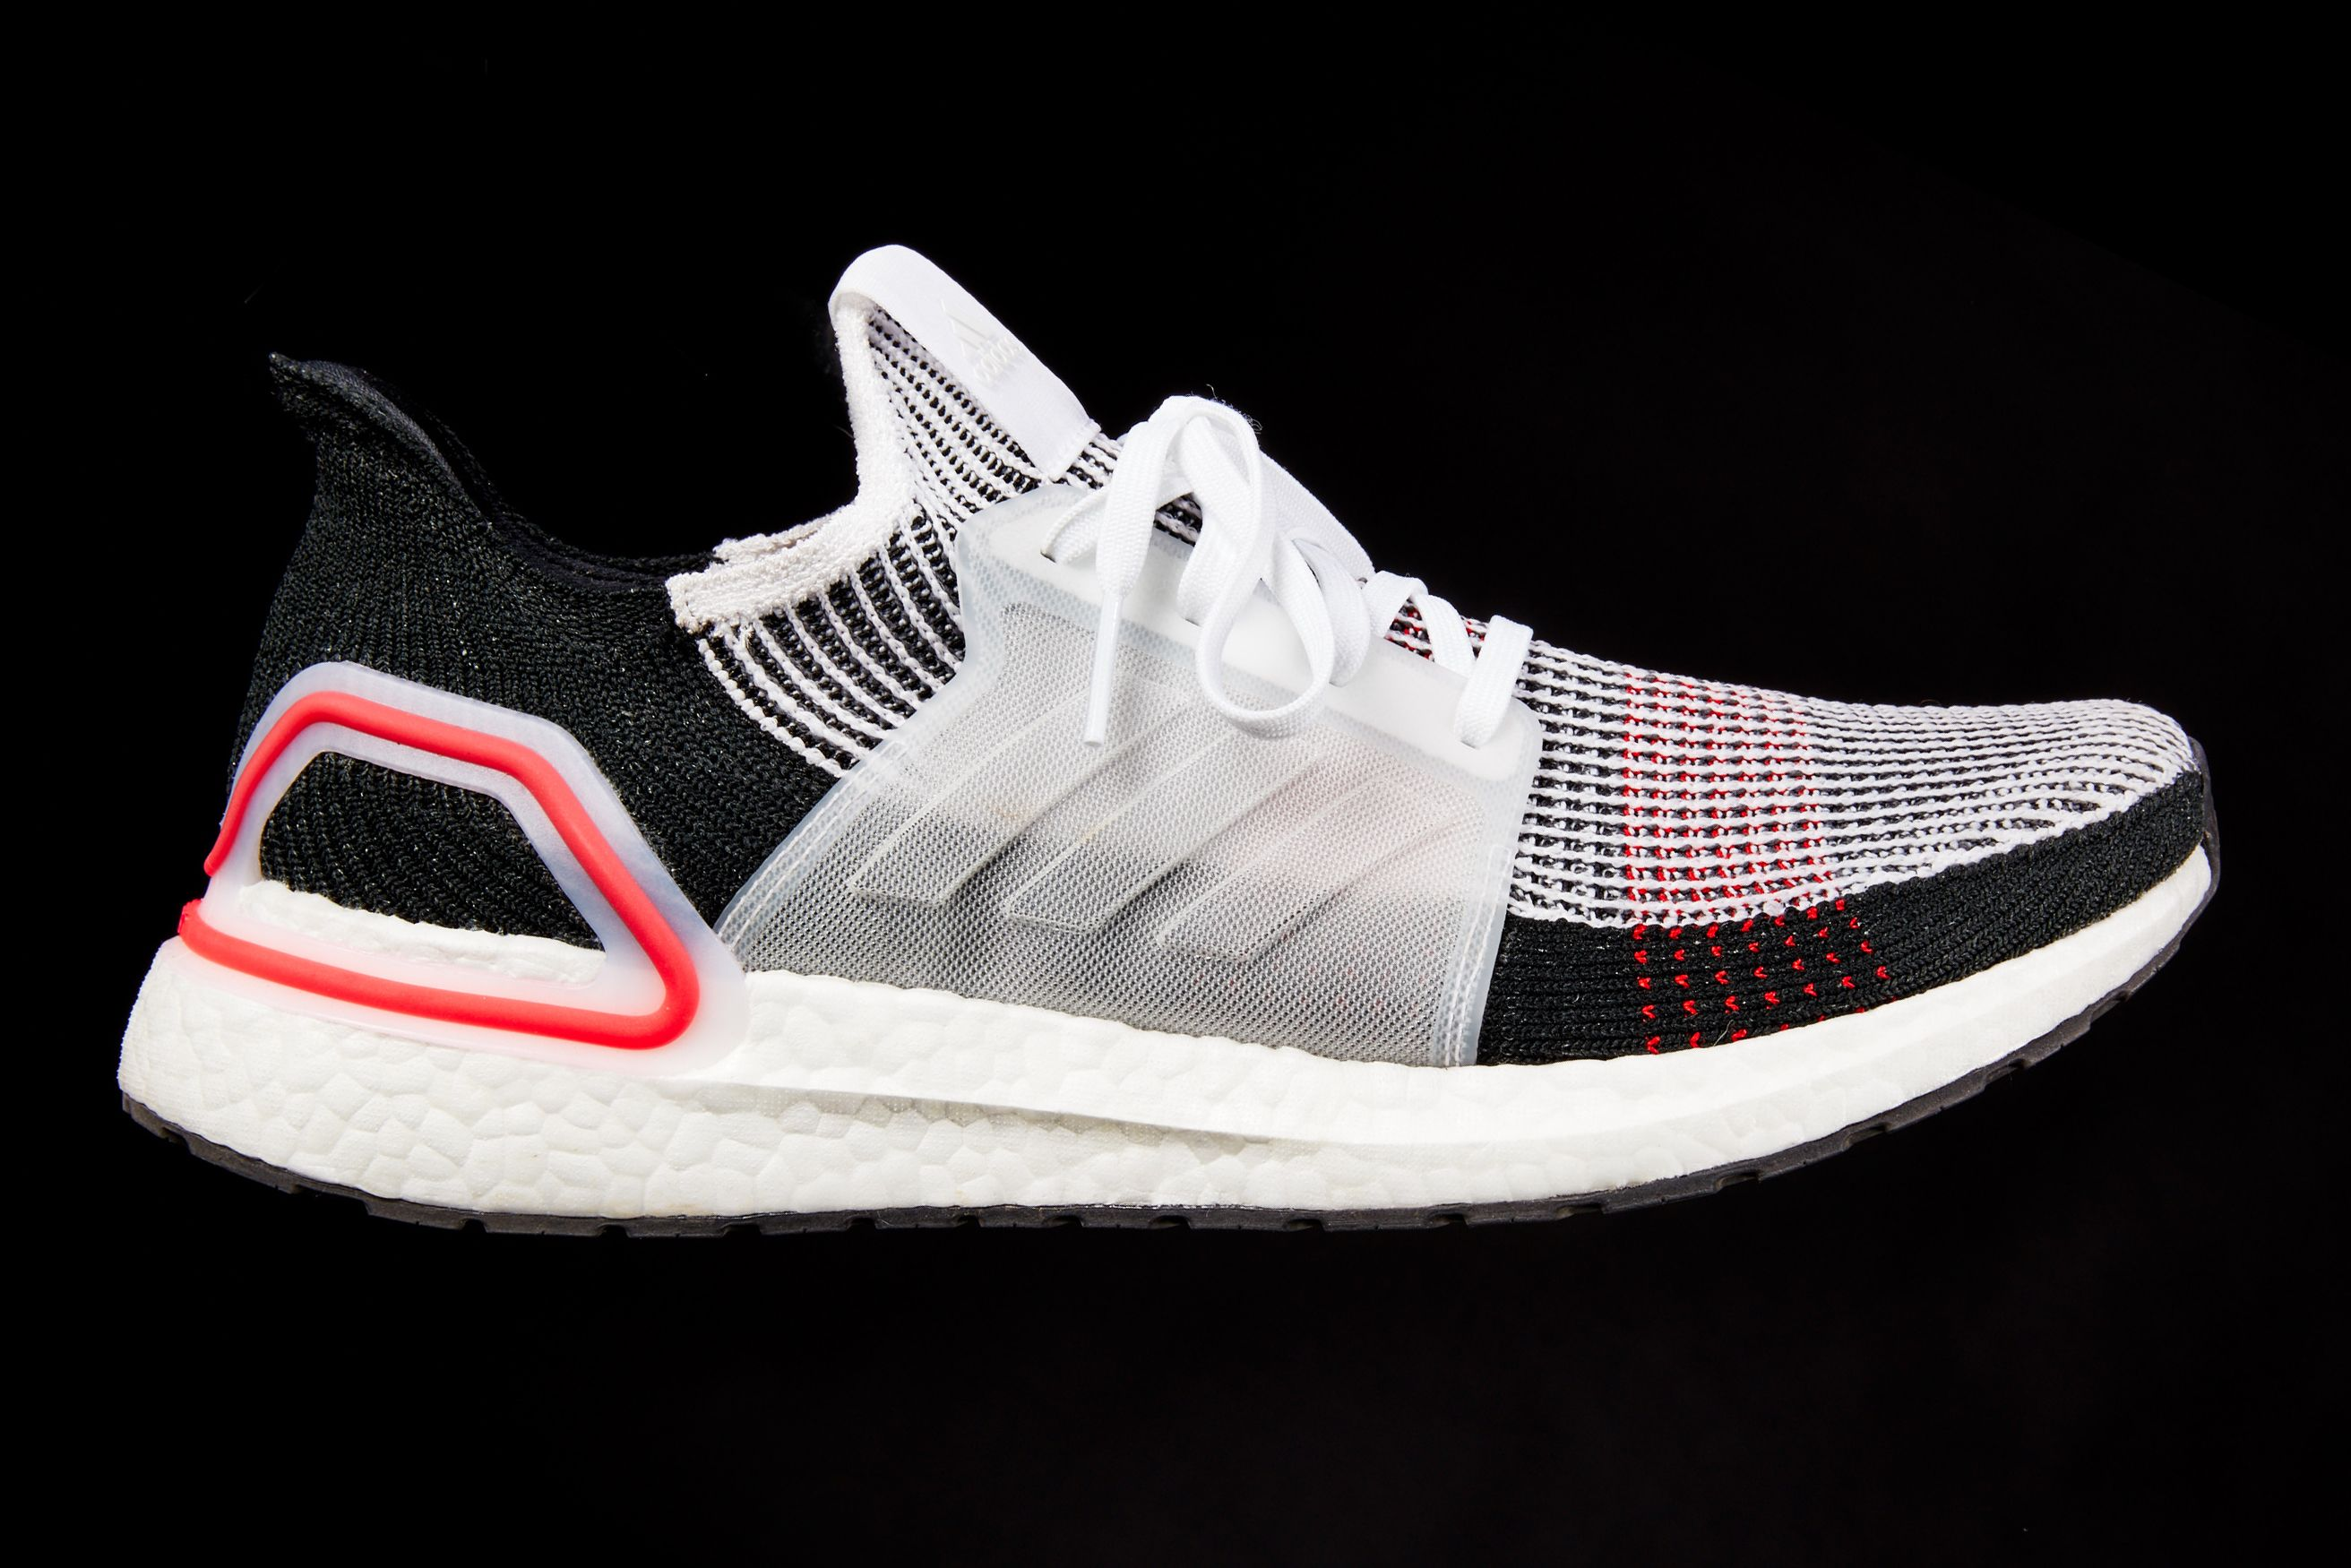 e3a84eb50ca Adidas UltraBoost 19 Review— Cushioned Running Shoes